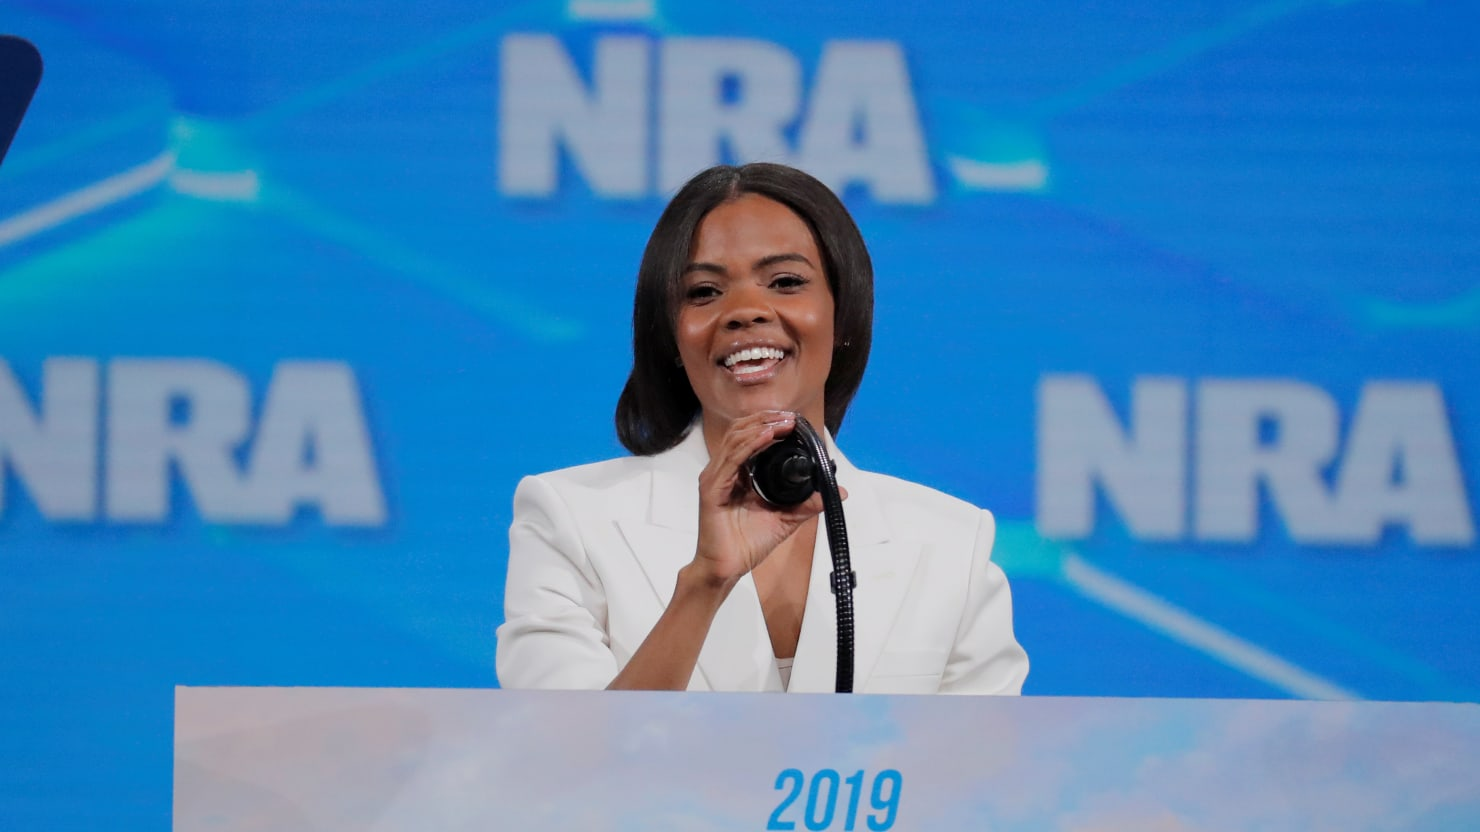 Candace Owens Is a Willing Tool of Republican Racists